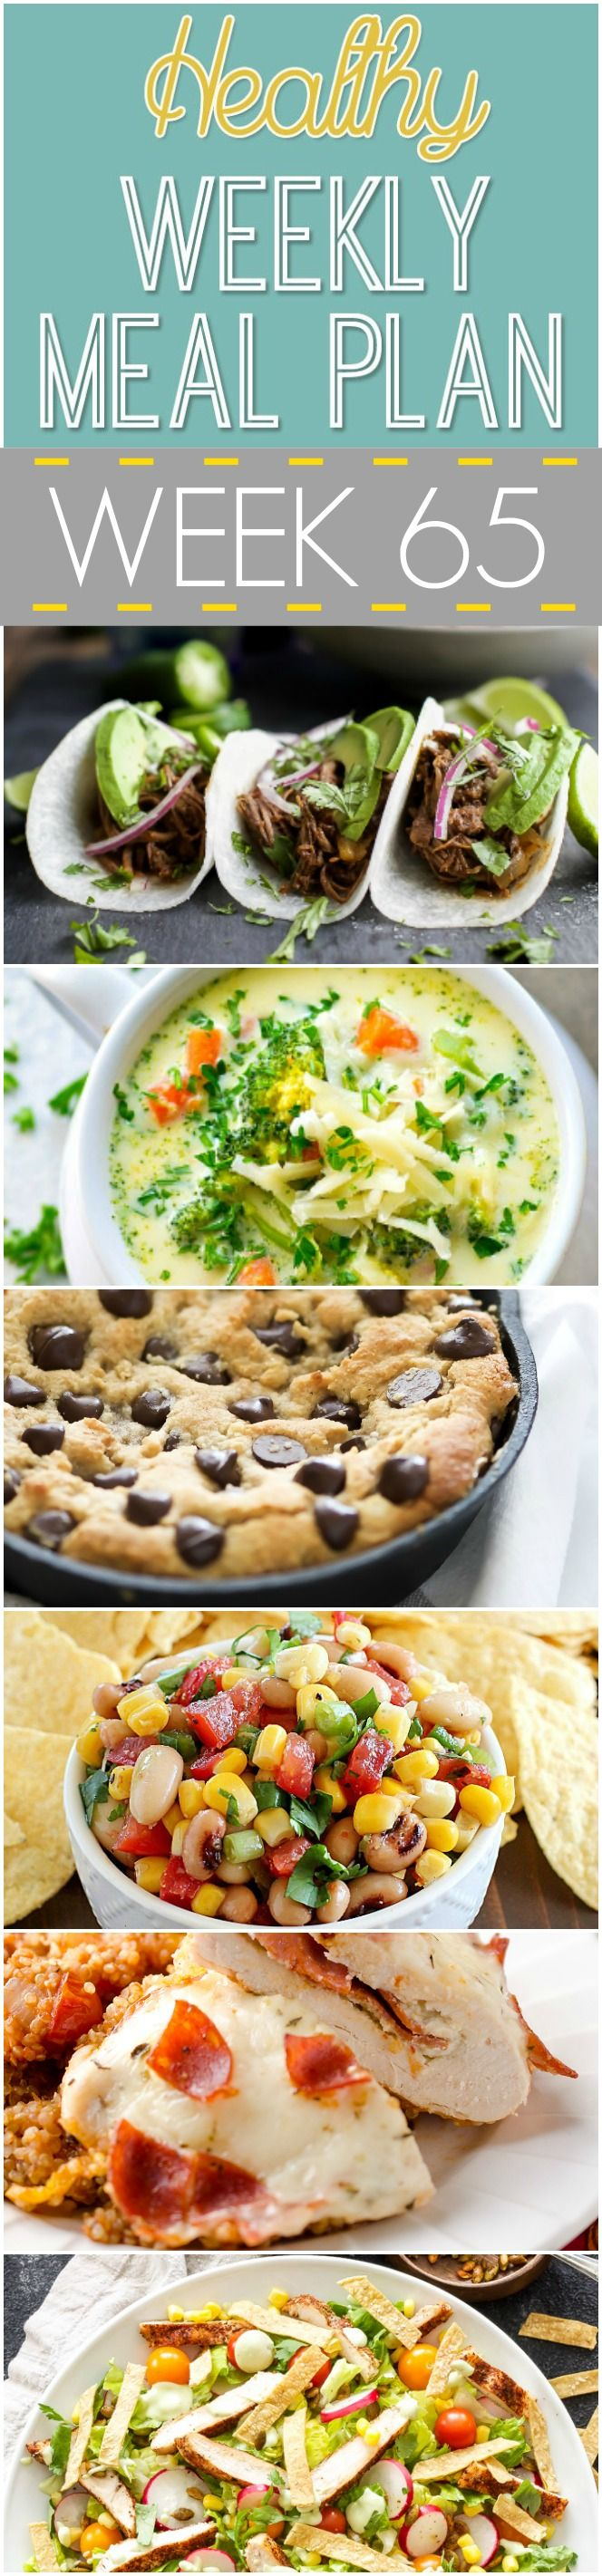 Healthy Meal Plan Week 65 starts with Lemon Rosemary White Bean Toasts with Mushrooms, pair with a side salad and you are on your way! Make sure to save room for Deep Dish Salted Caramel Chocolate Chip Blondies! Healthy enough you can have seconds!